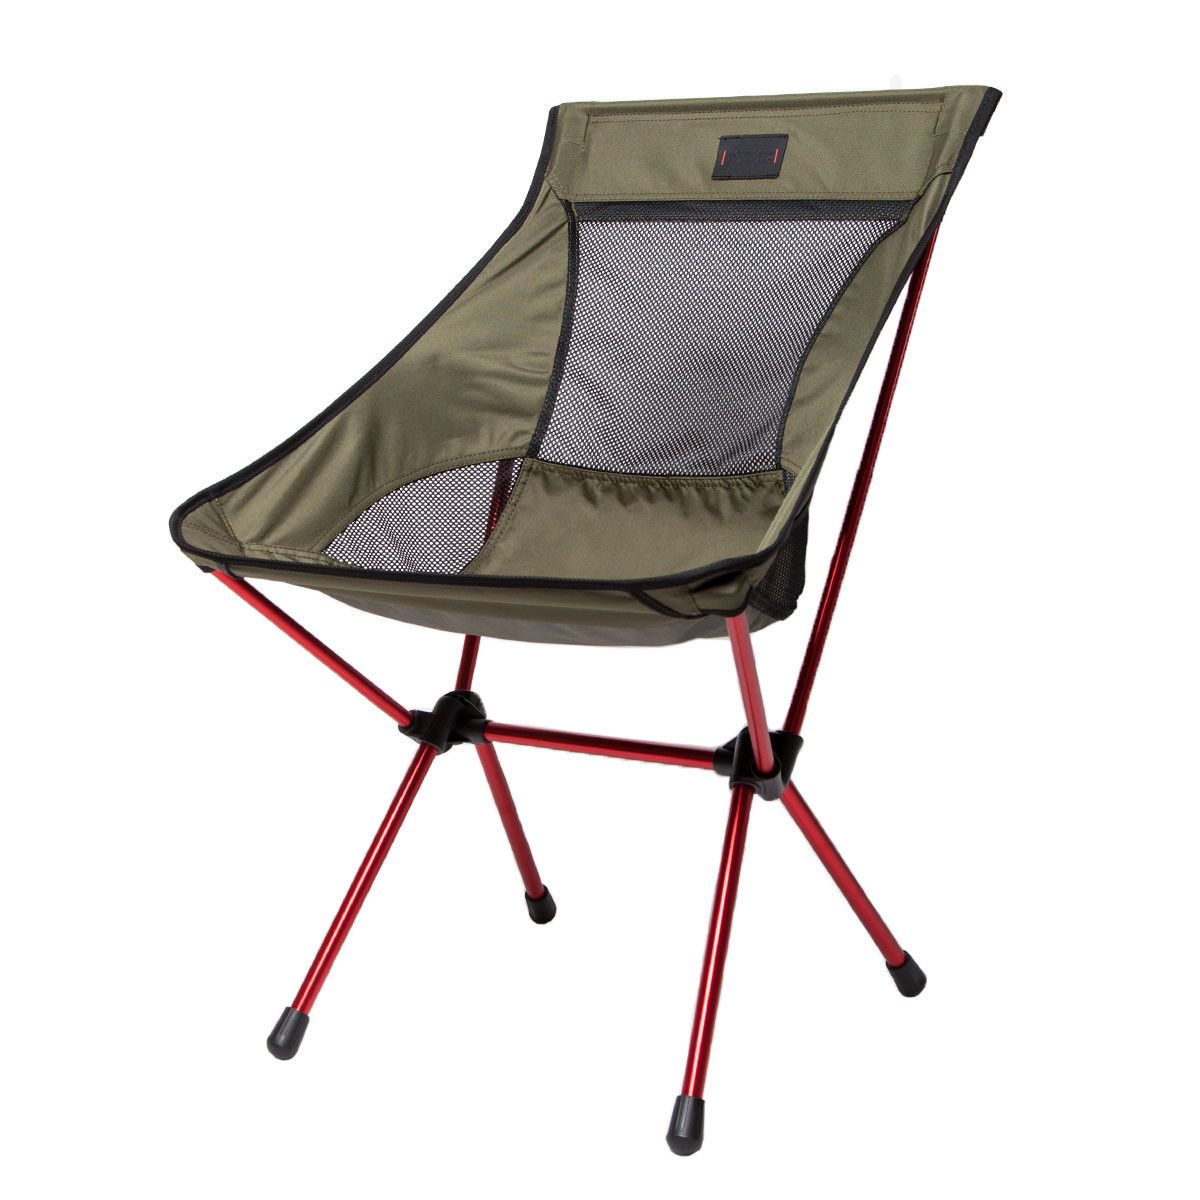 Mountain Standard's Camp Chairs are the perfect finishing